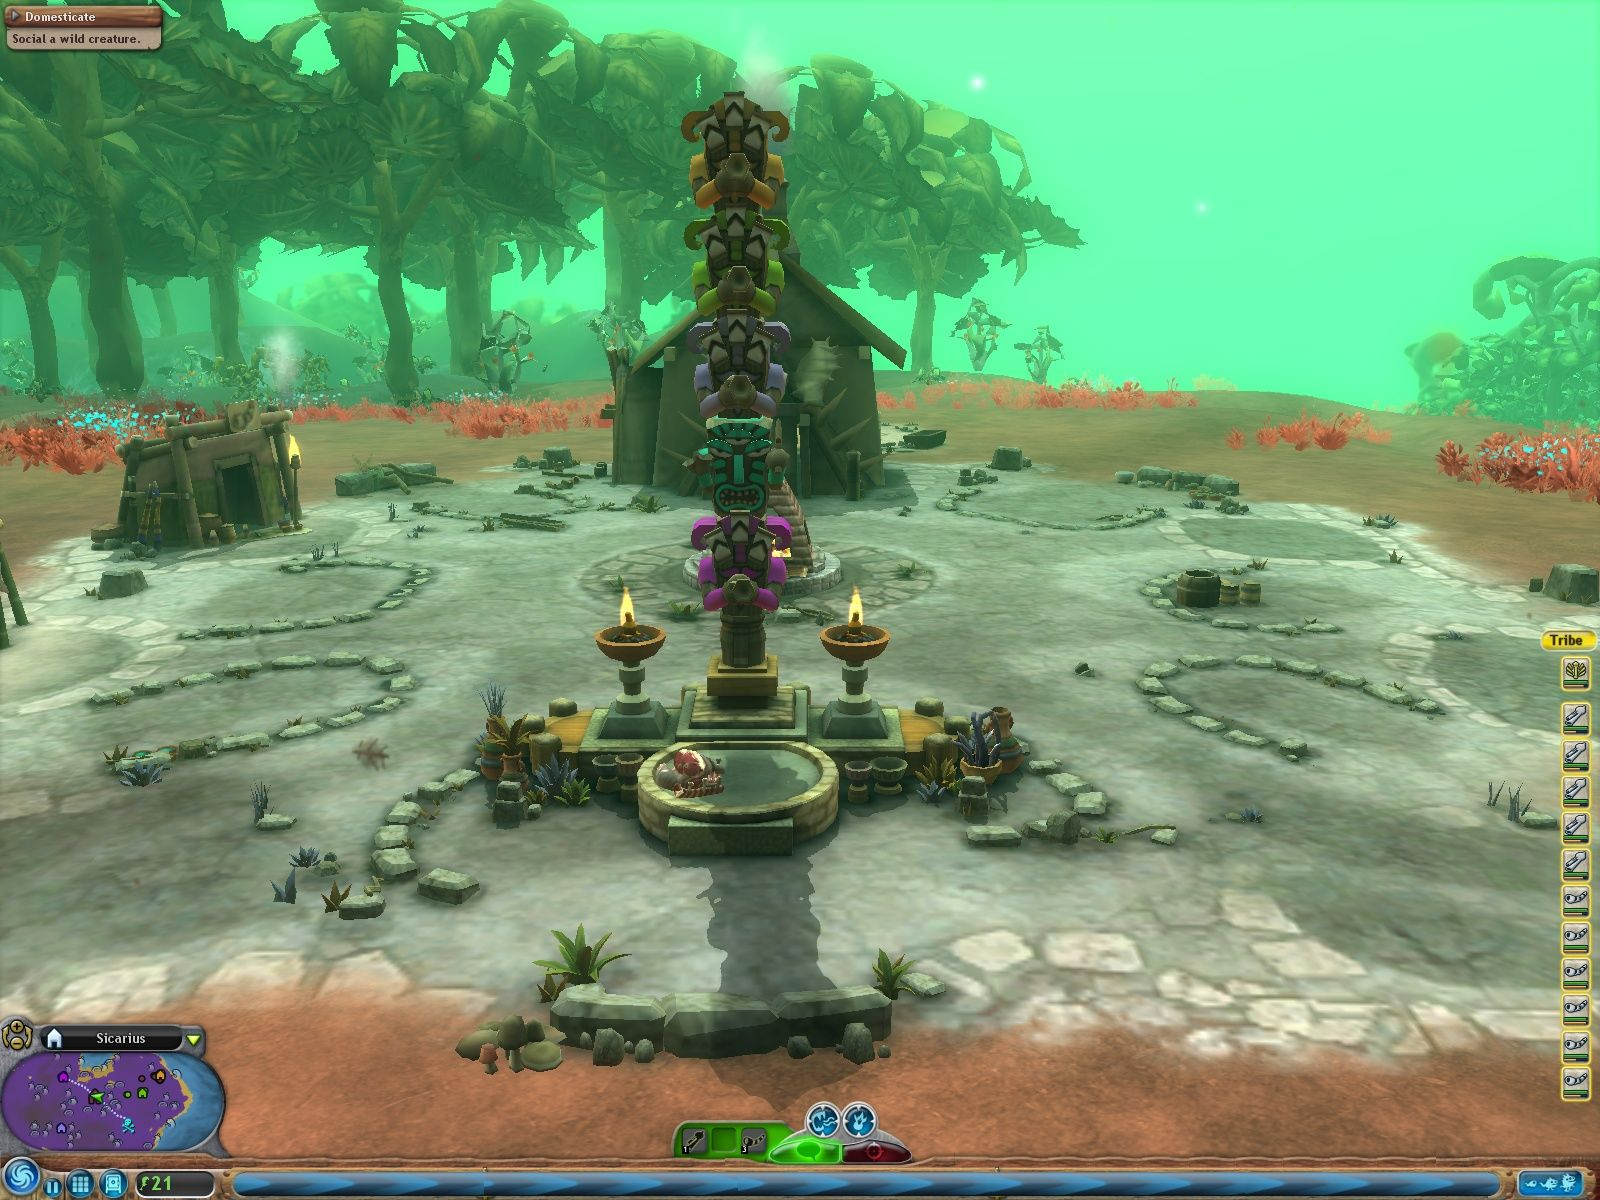 Spore Windows I conquered or allied myself with every neighbouring tribe and the totem shows that.